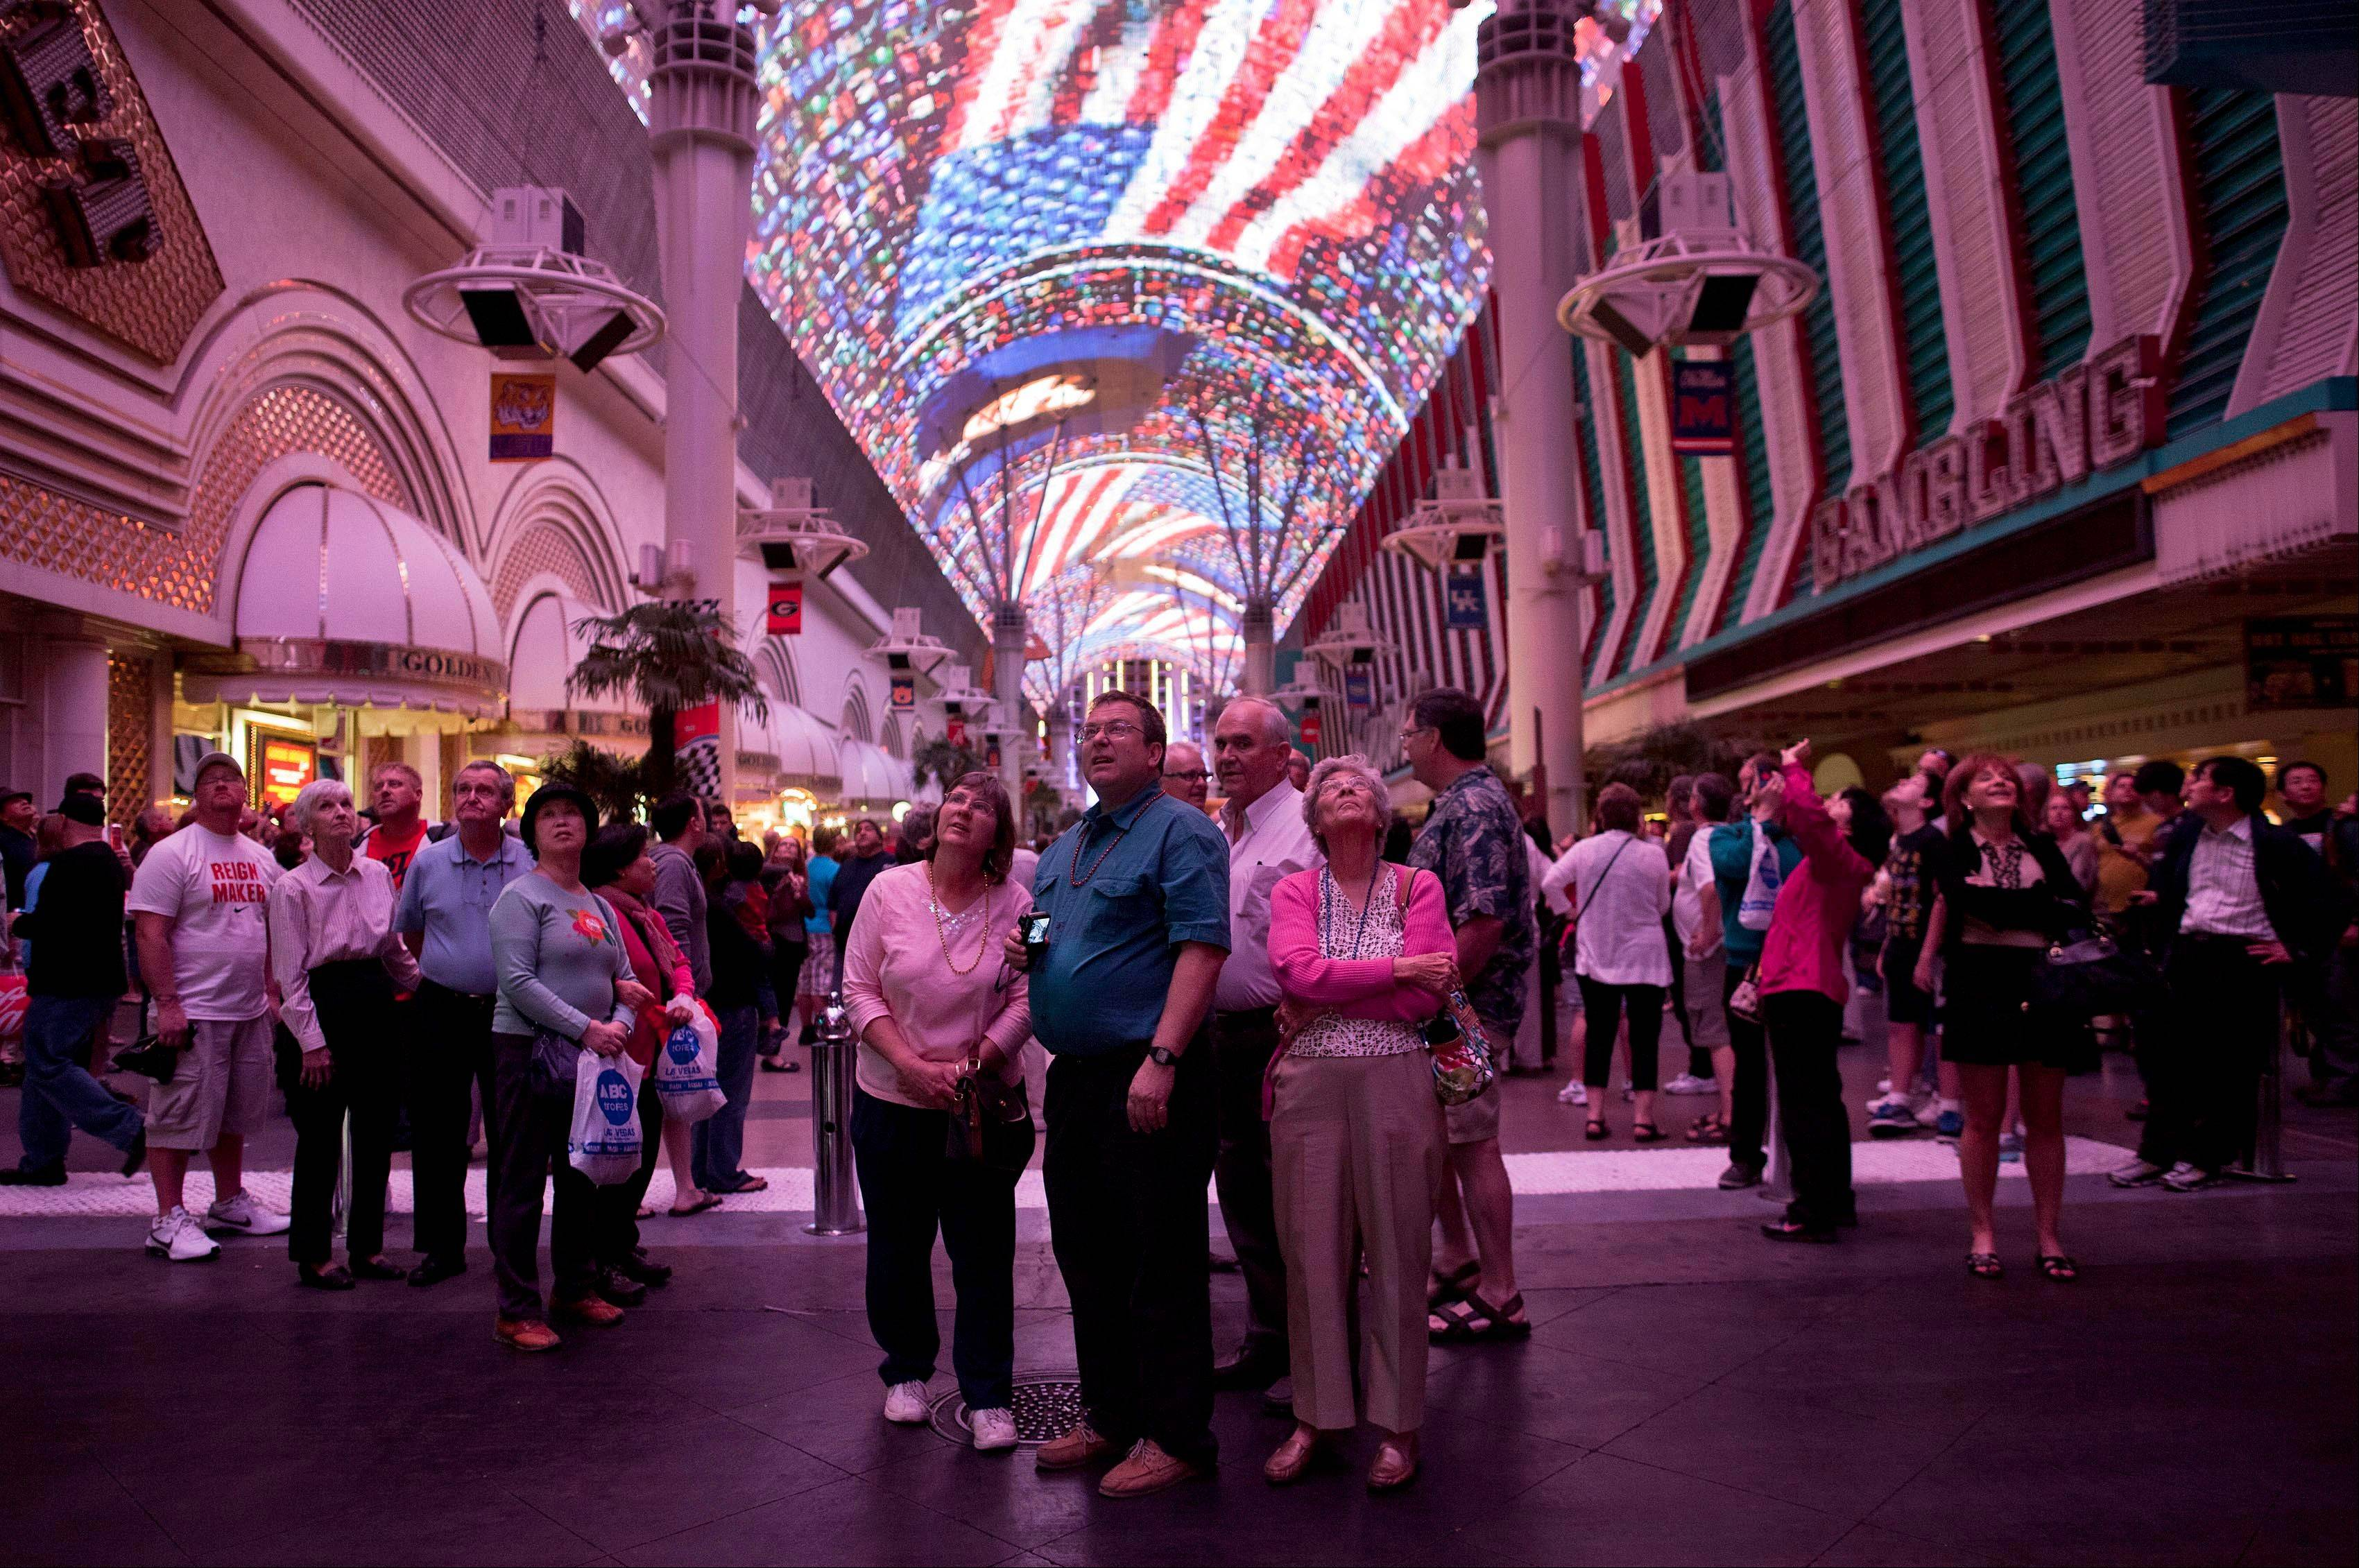 Tourists stop to watch the canopy light show at the Fremont Street Experience in Las Vegas on March 22. Despite some recent diversification, Nevada's economy is more concentrated than virtually any other state. The tourism/gambling sector accounts for more than one-quarter of Nevada's 1.14 million nonfarm jobs, and 13 of the 20 largest employers are casino/hotel companies. Obama and his Republican rival, Mitt Romney, have visited the state, competing strenuously for Nevada's six electoral votes in what has become one of the most intense swing-state contests.